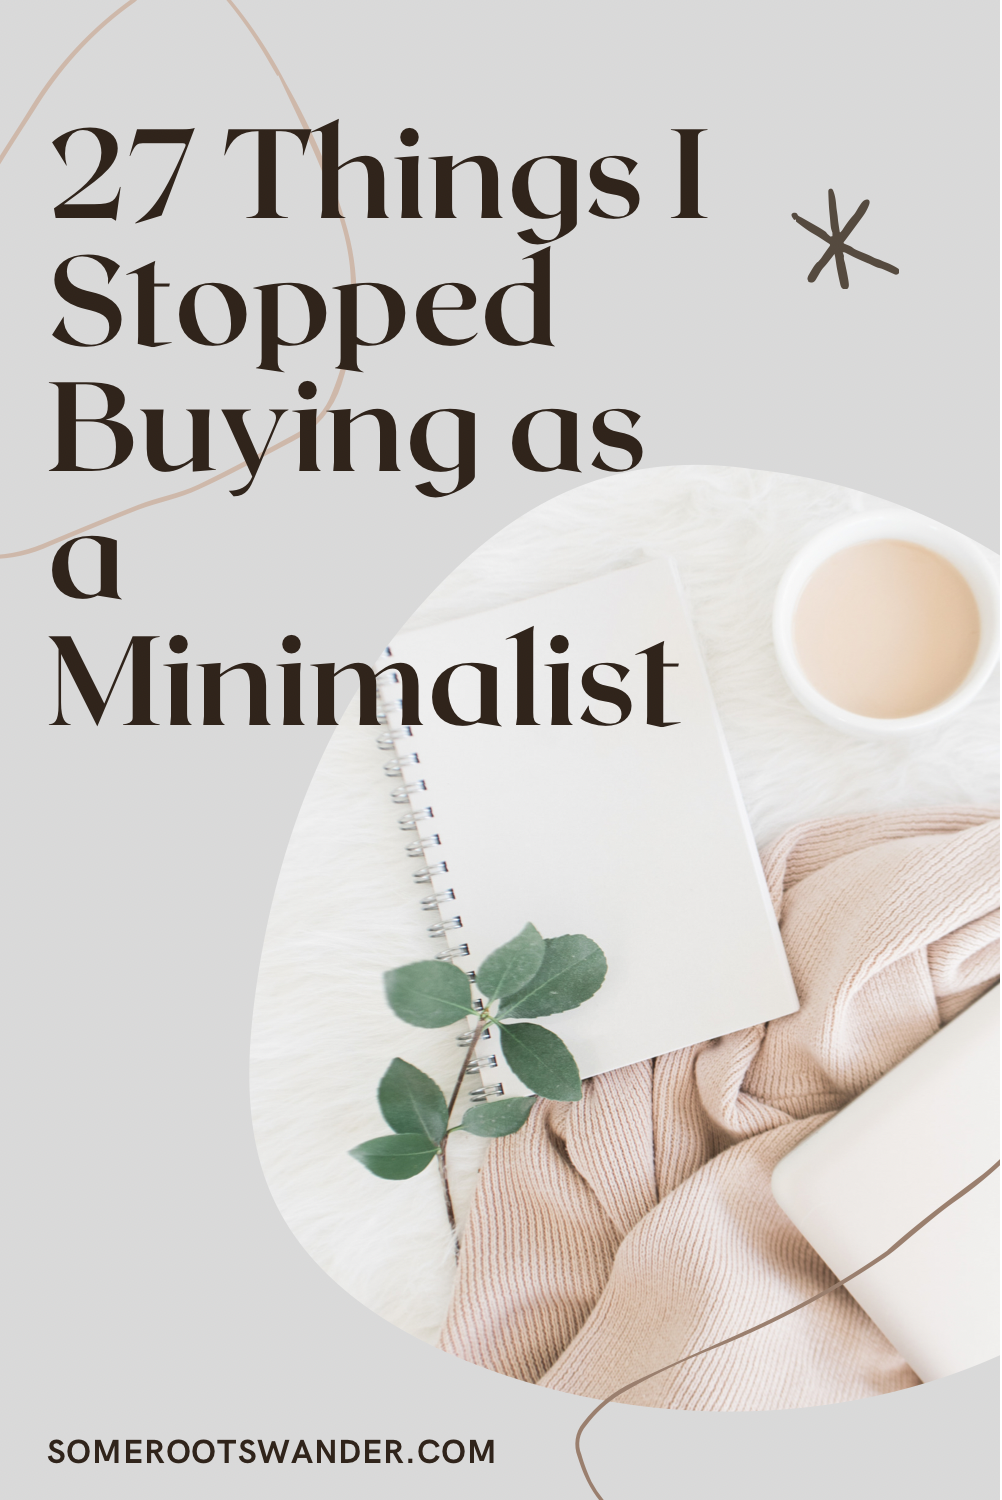 Things I Stopped Buying